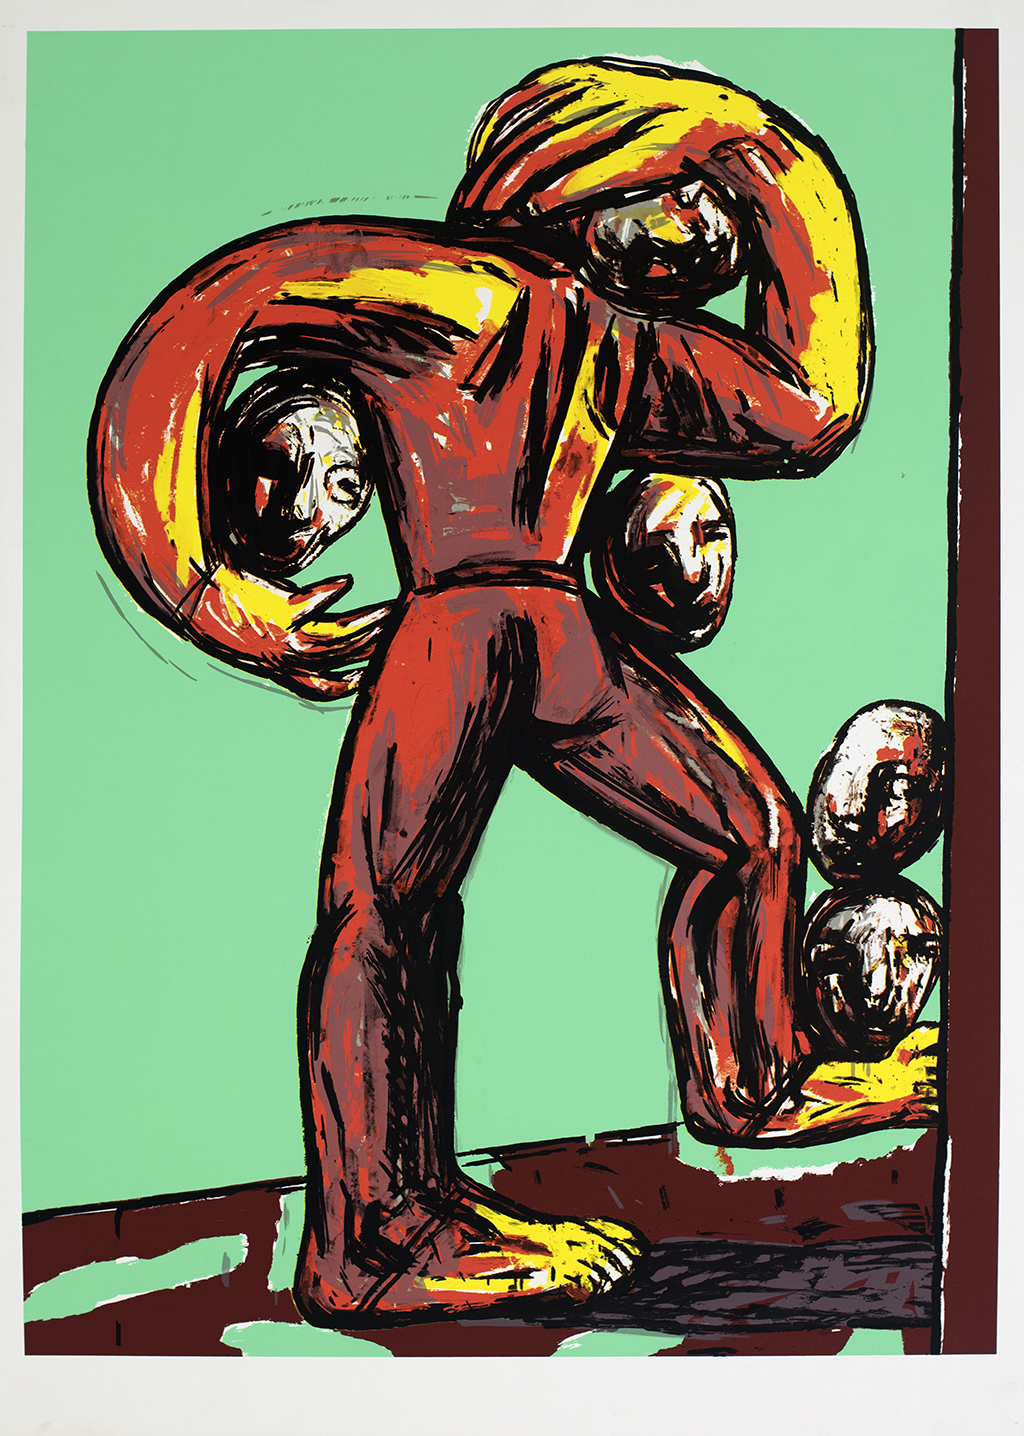 Painting of a stylized figure in orange and yellow holding several heads against a teal background.